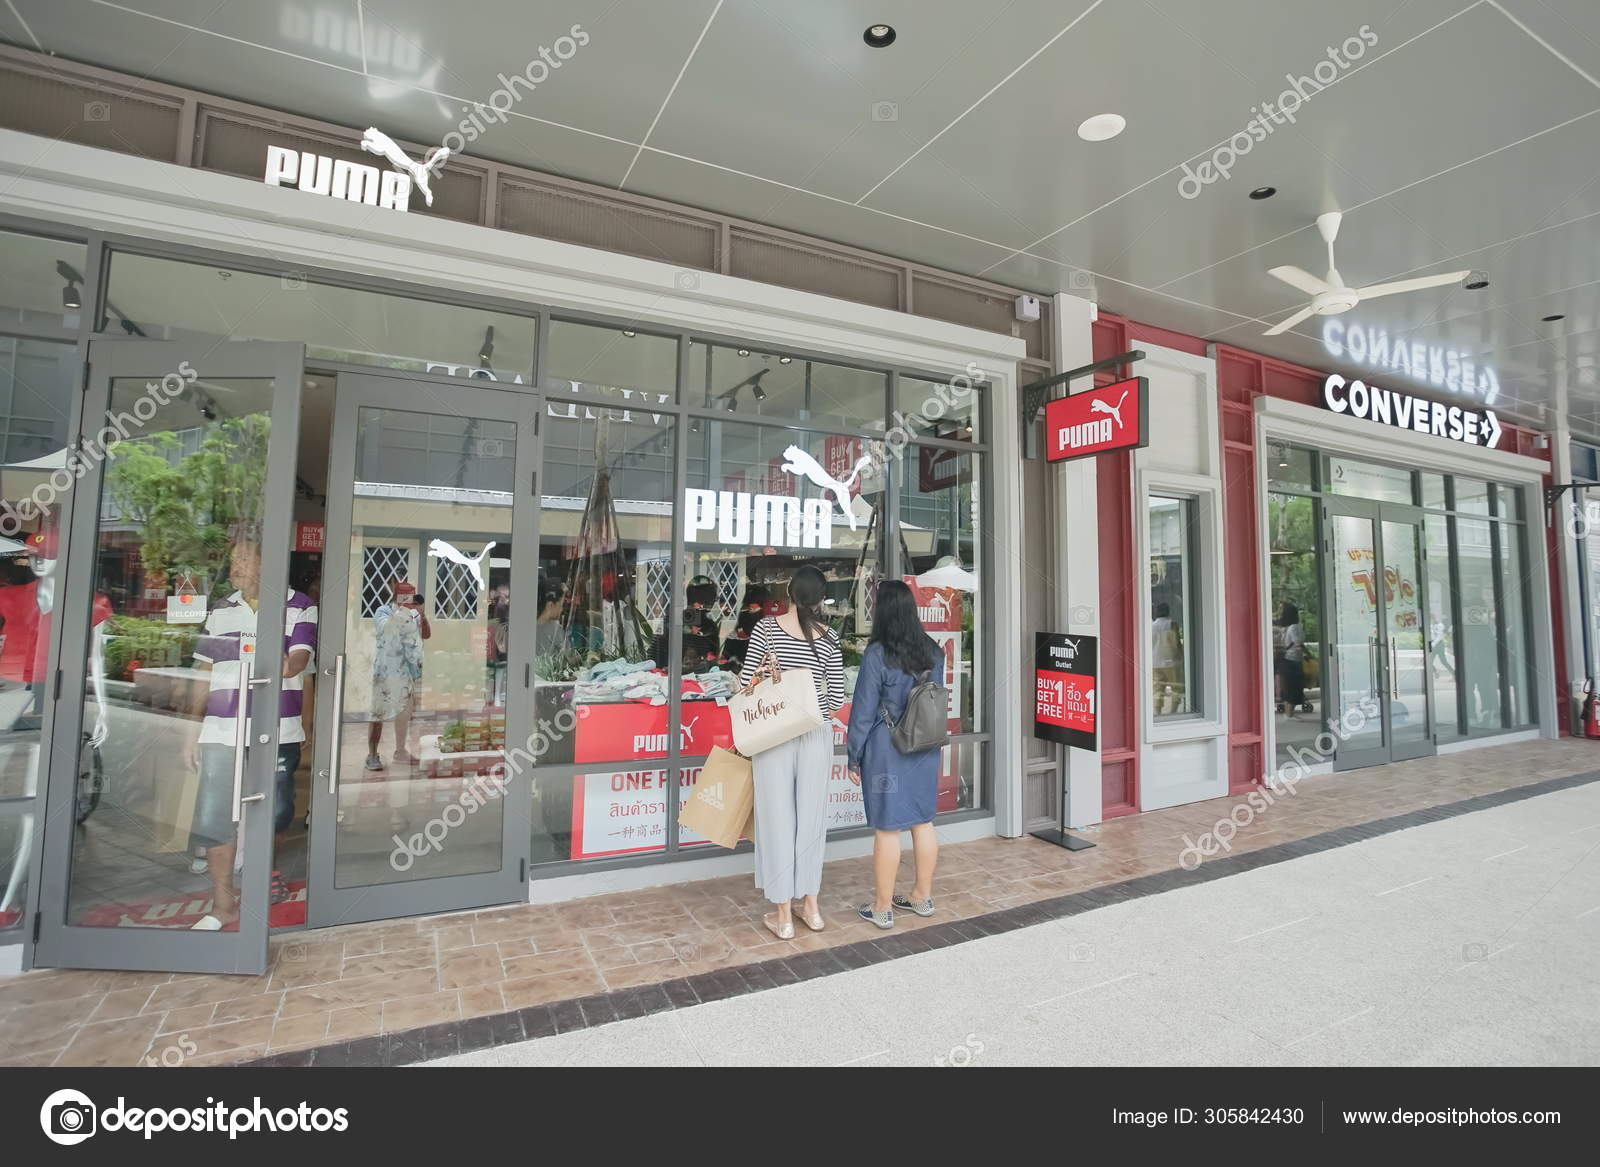 Puma and Converse Store in the new one